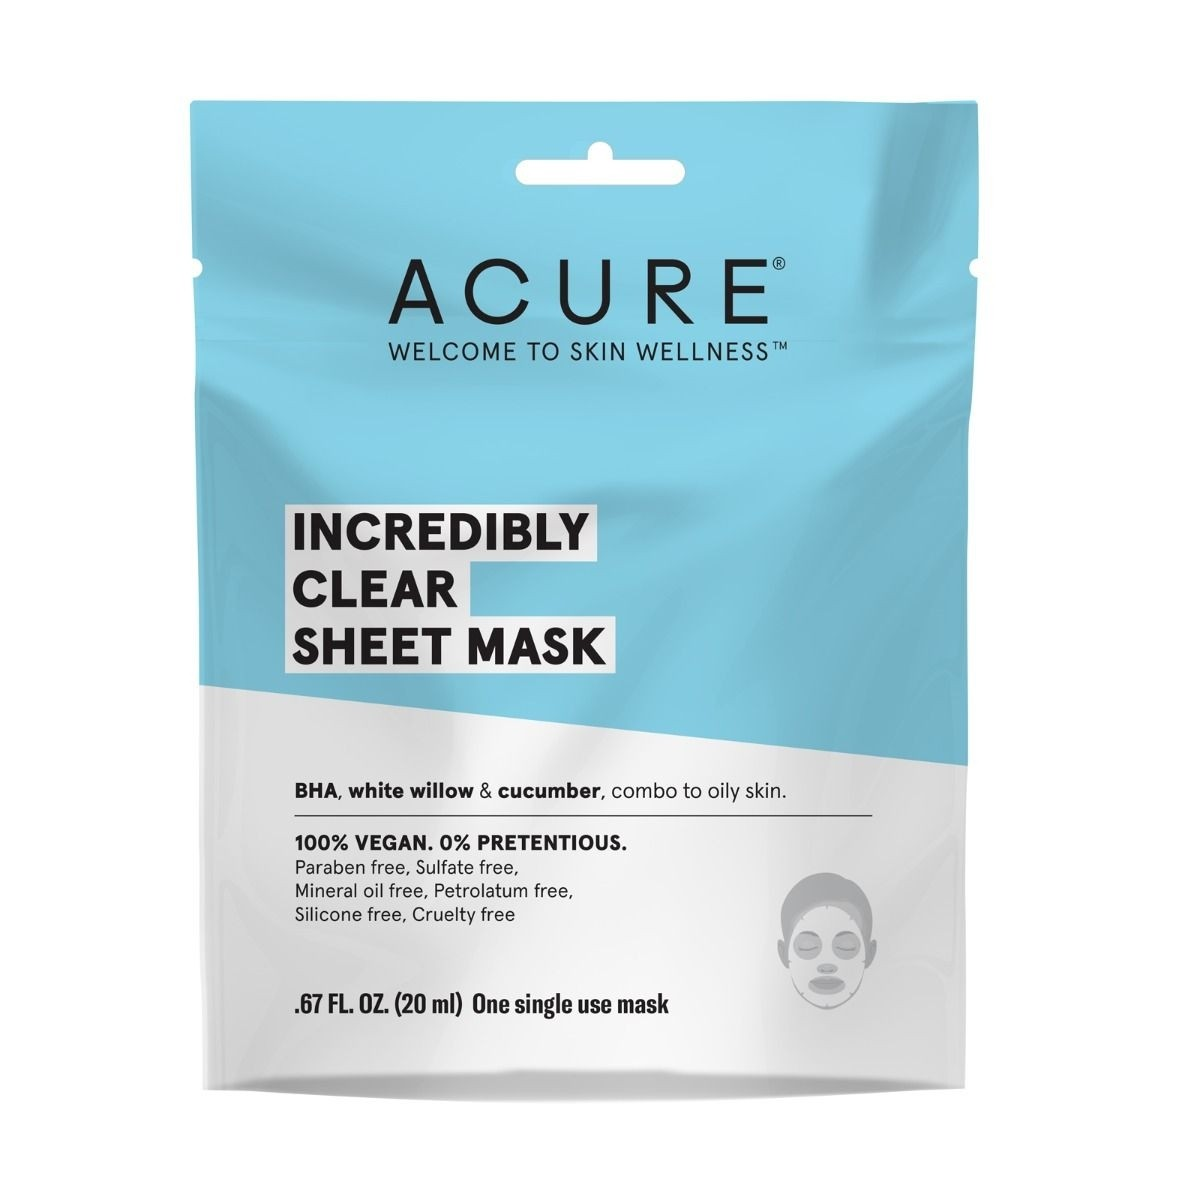 Acure Incredibly Clear Sheet Mask - 20ml